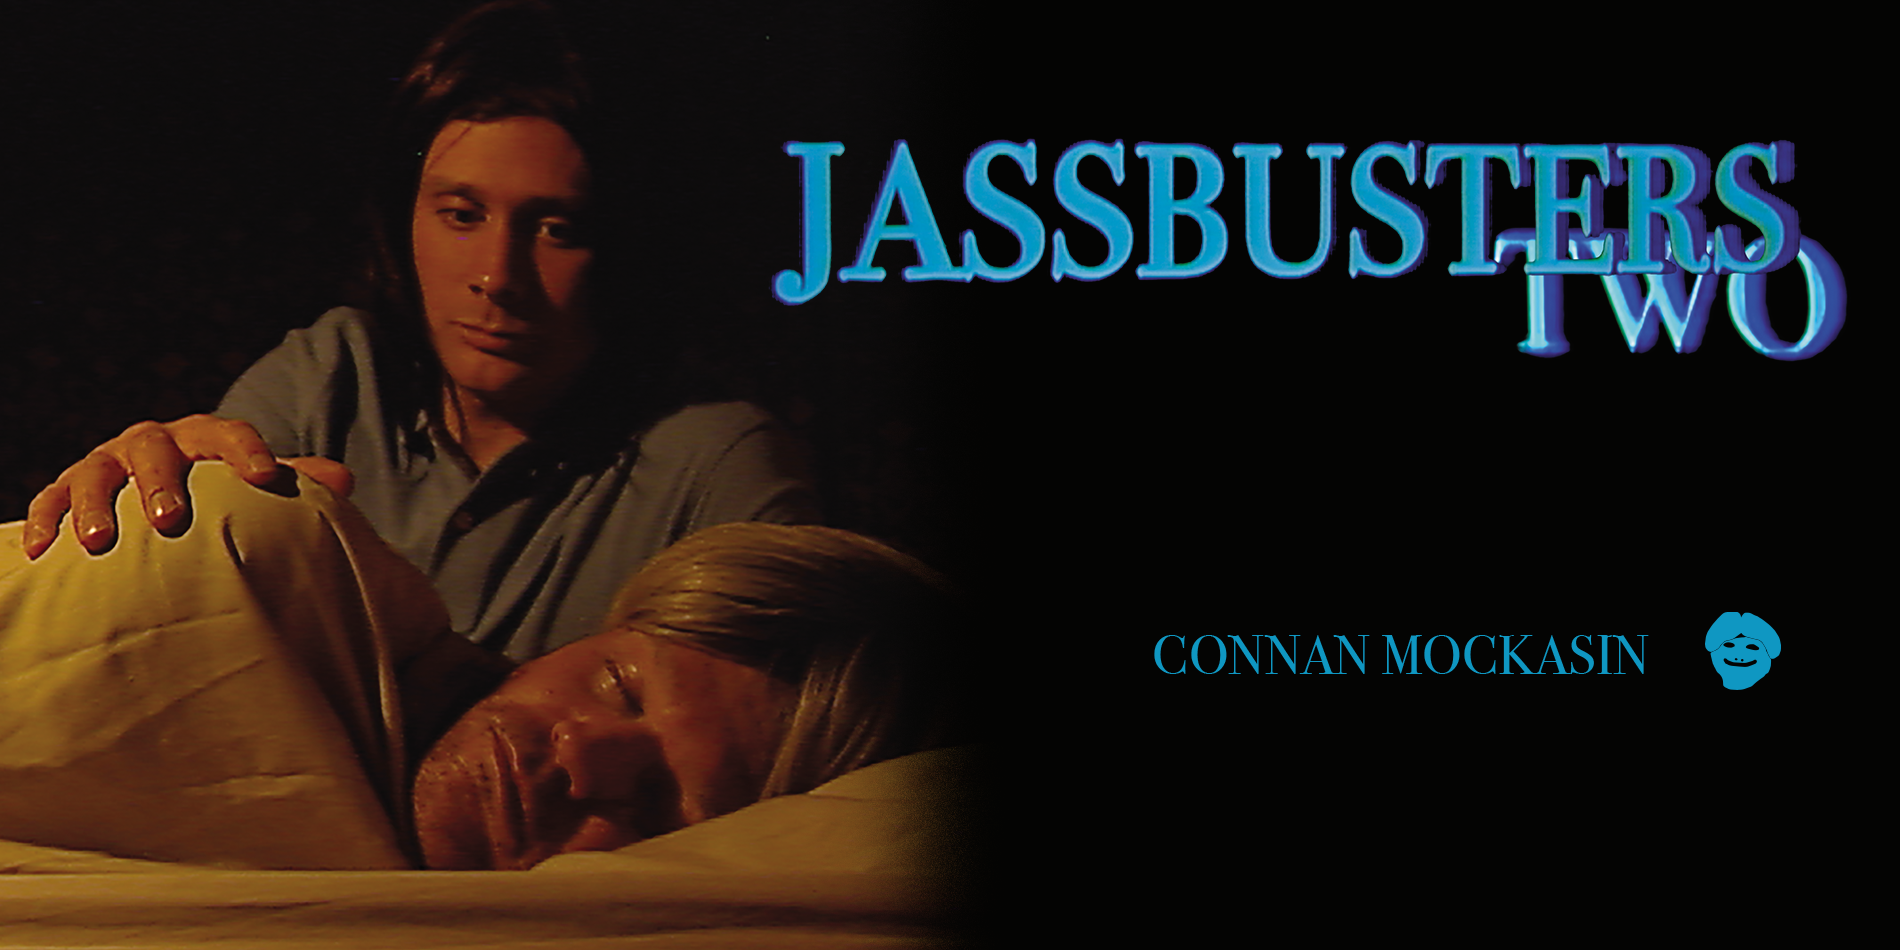 Connan Mockasin Jassbusters Two Site Banner